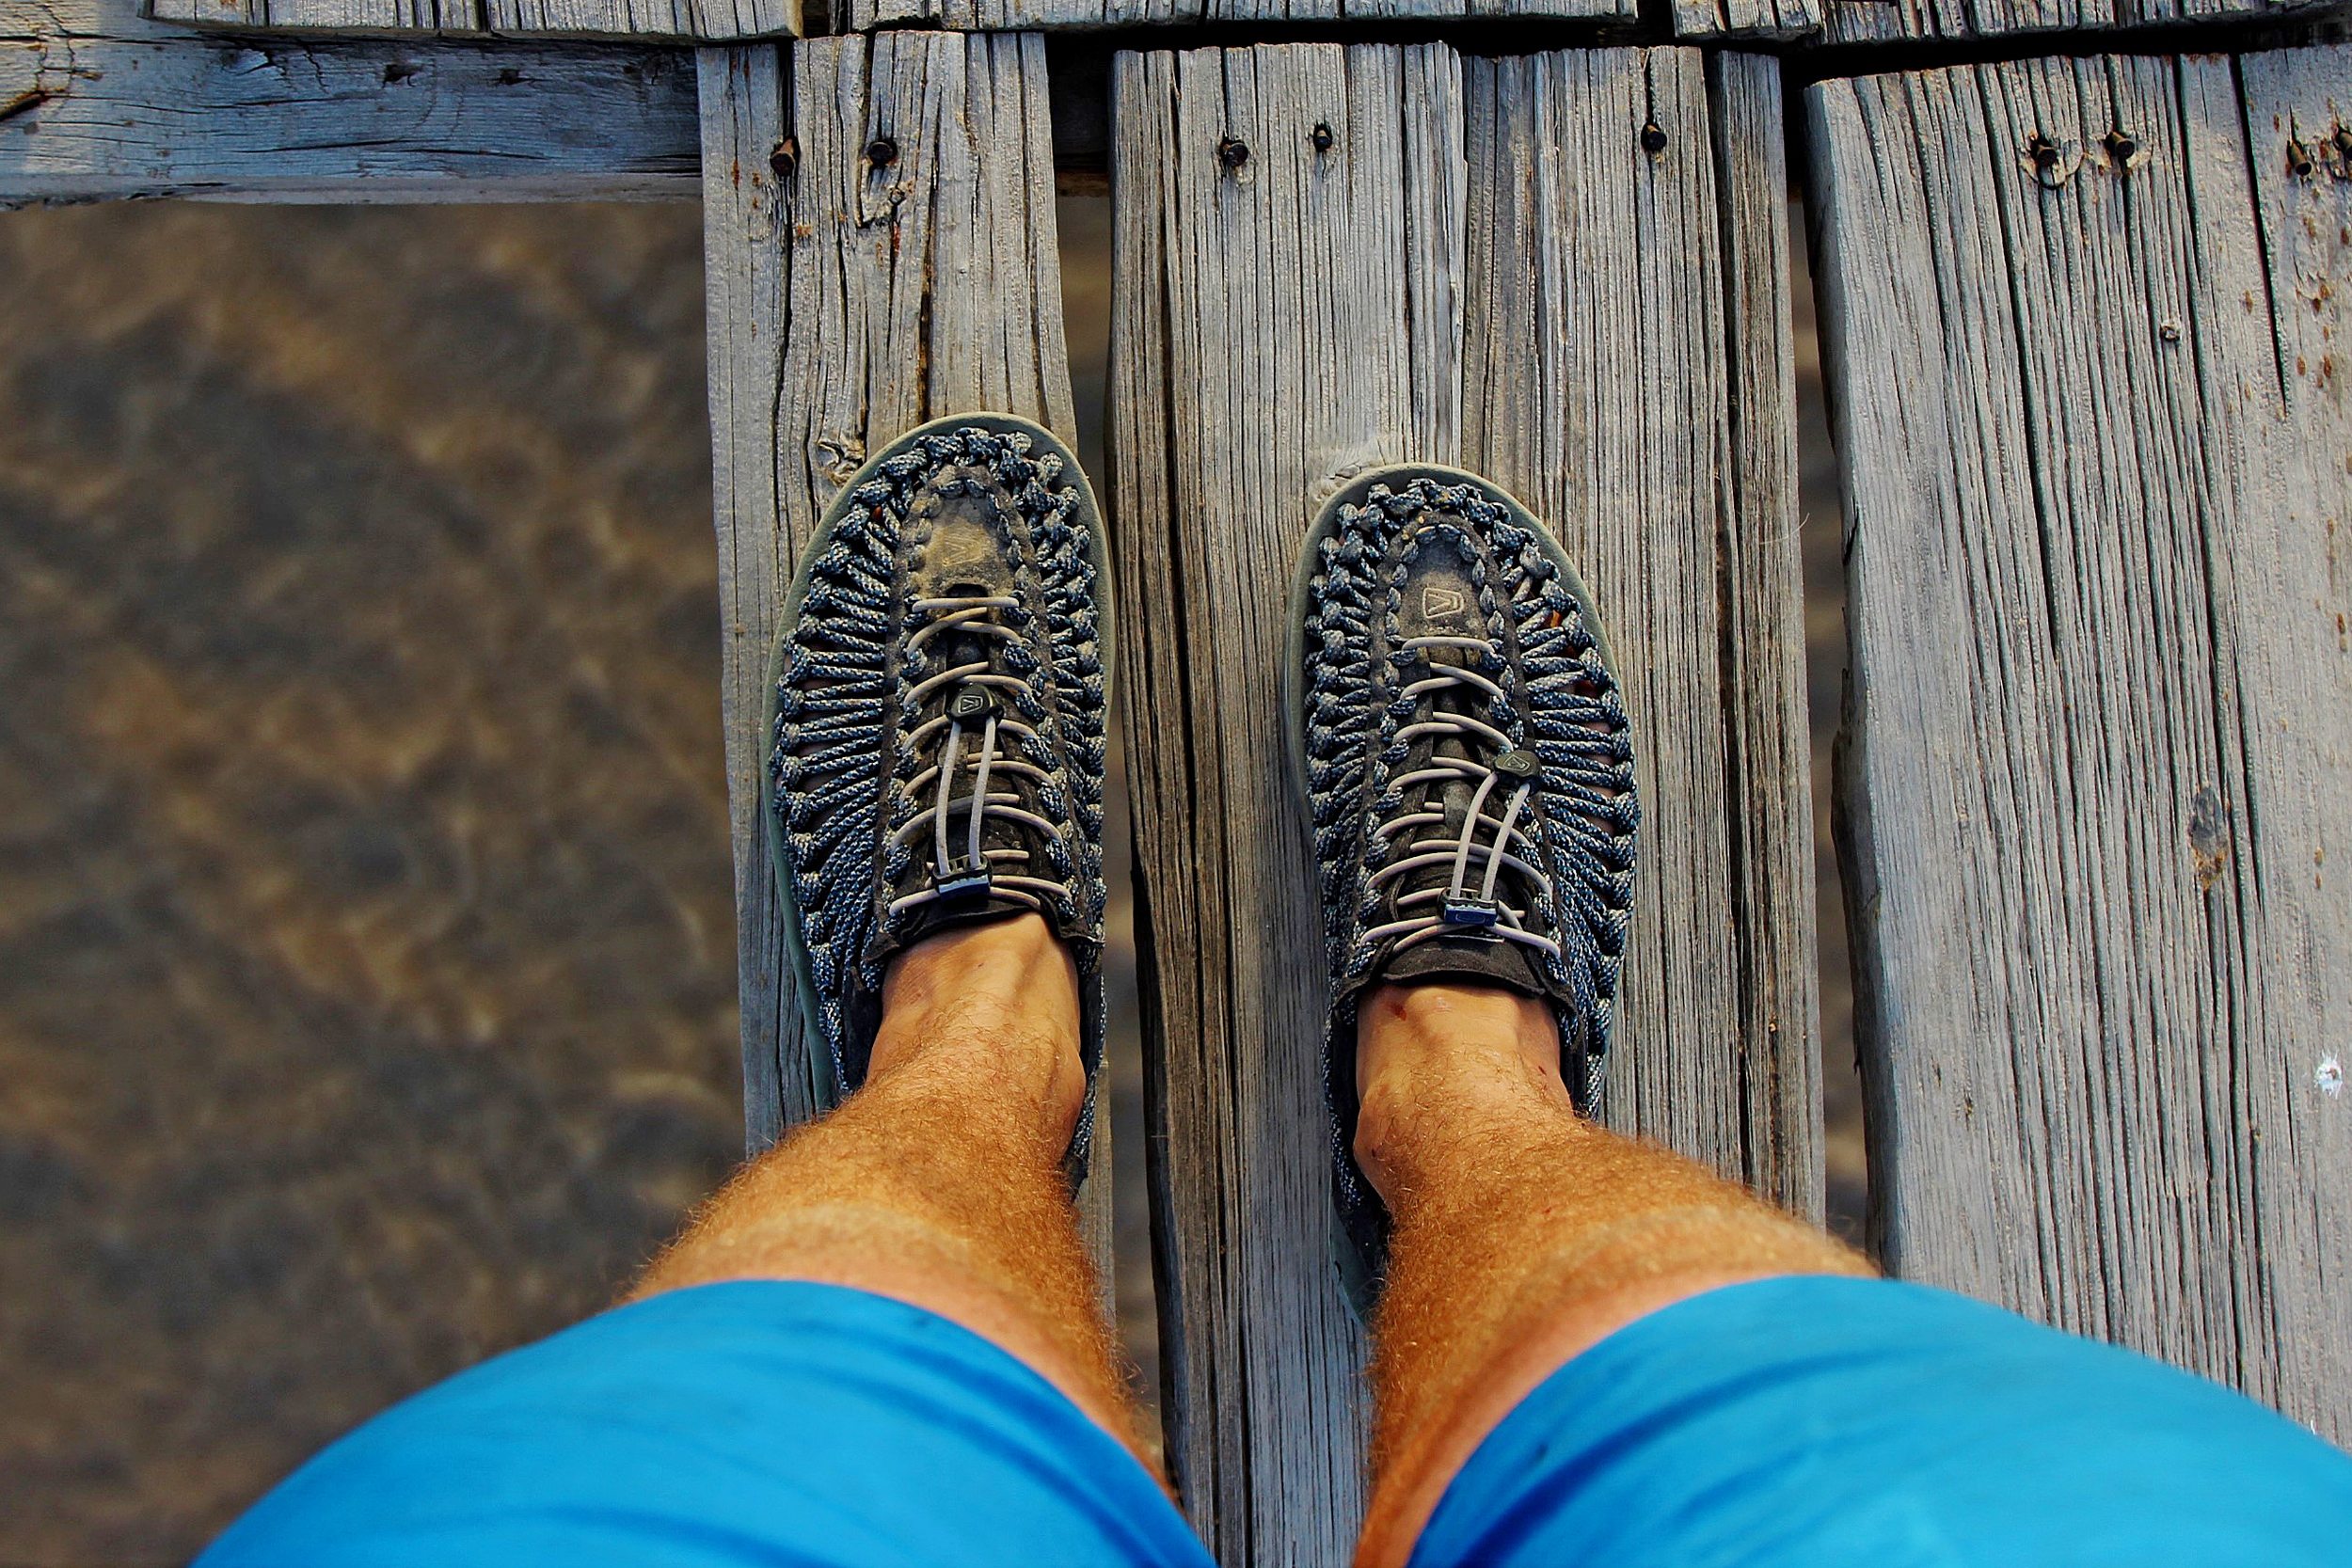 5c36f4f9d072 Keen UNEEK Shoes Review  The Crazy All-Purpose Adventure Shoes!